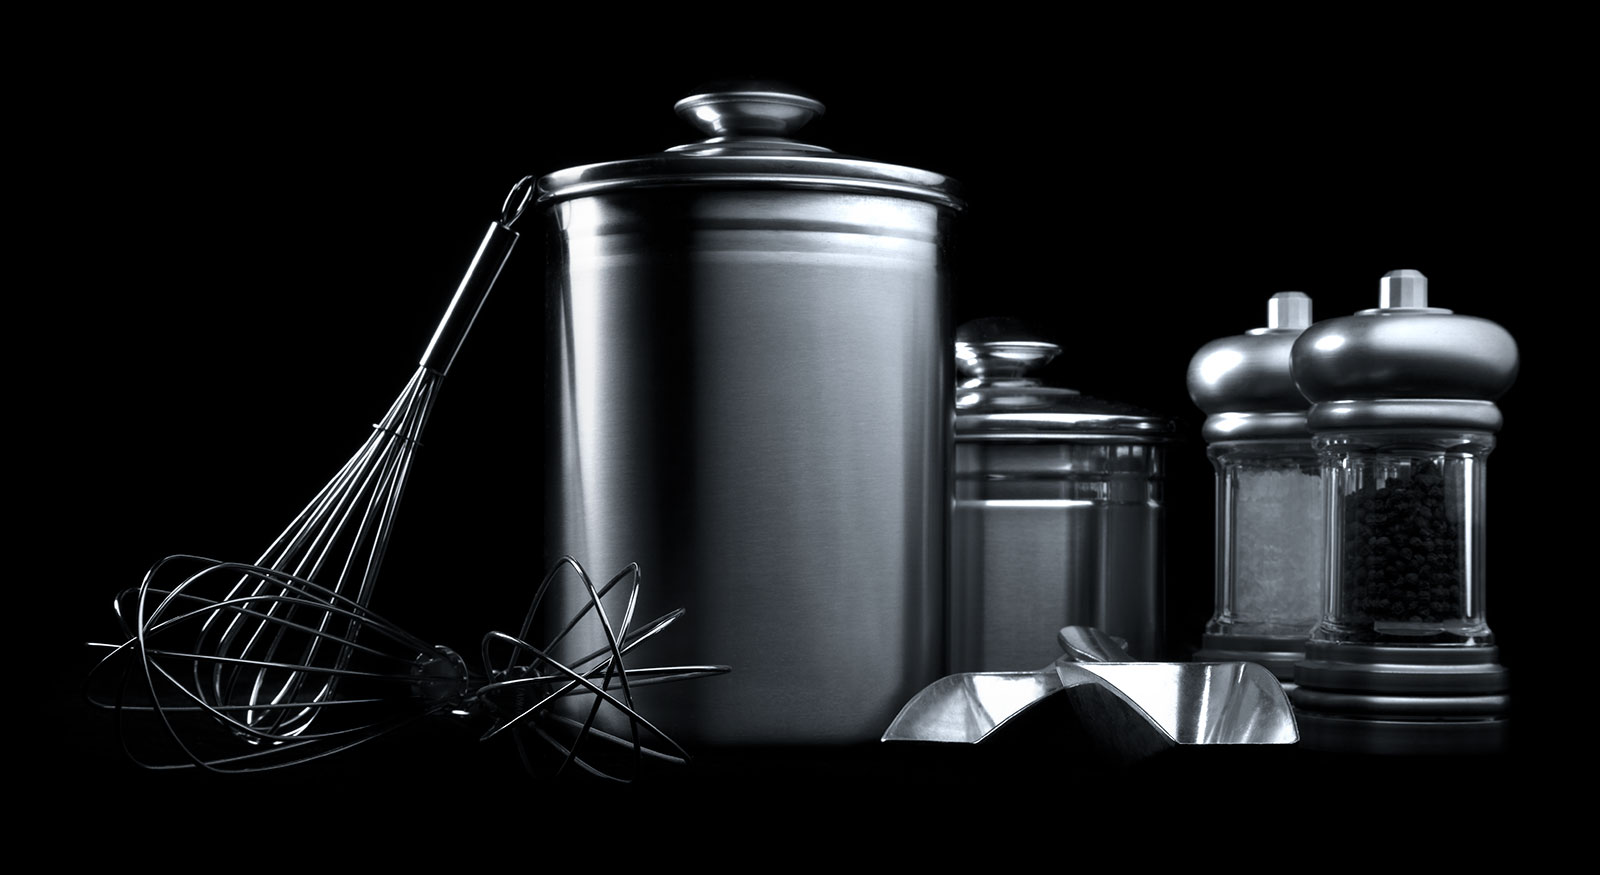 Stainless Steel Kitchenware Product Studio Photography